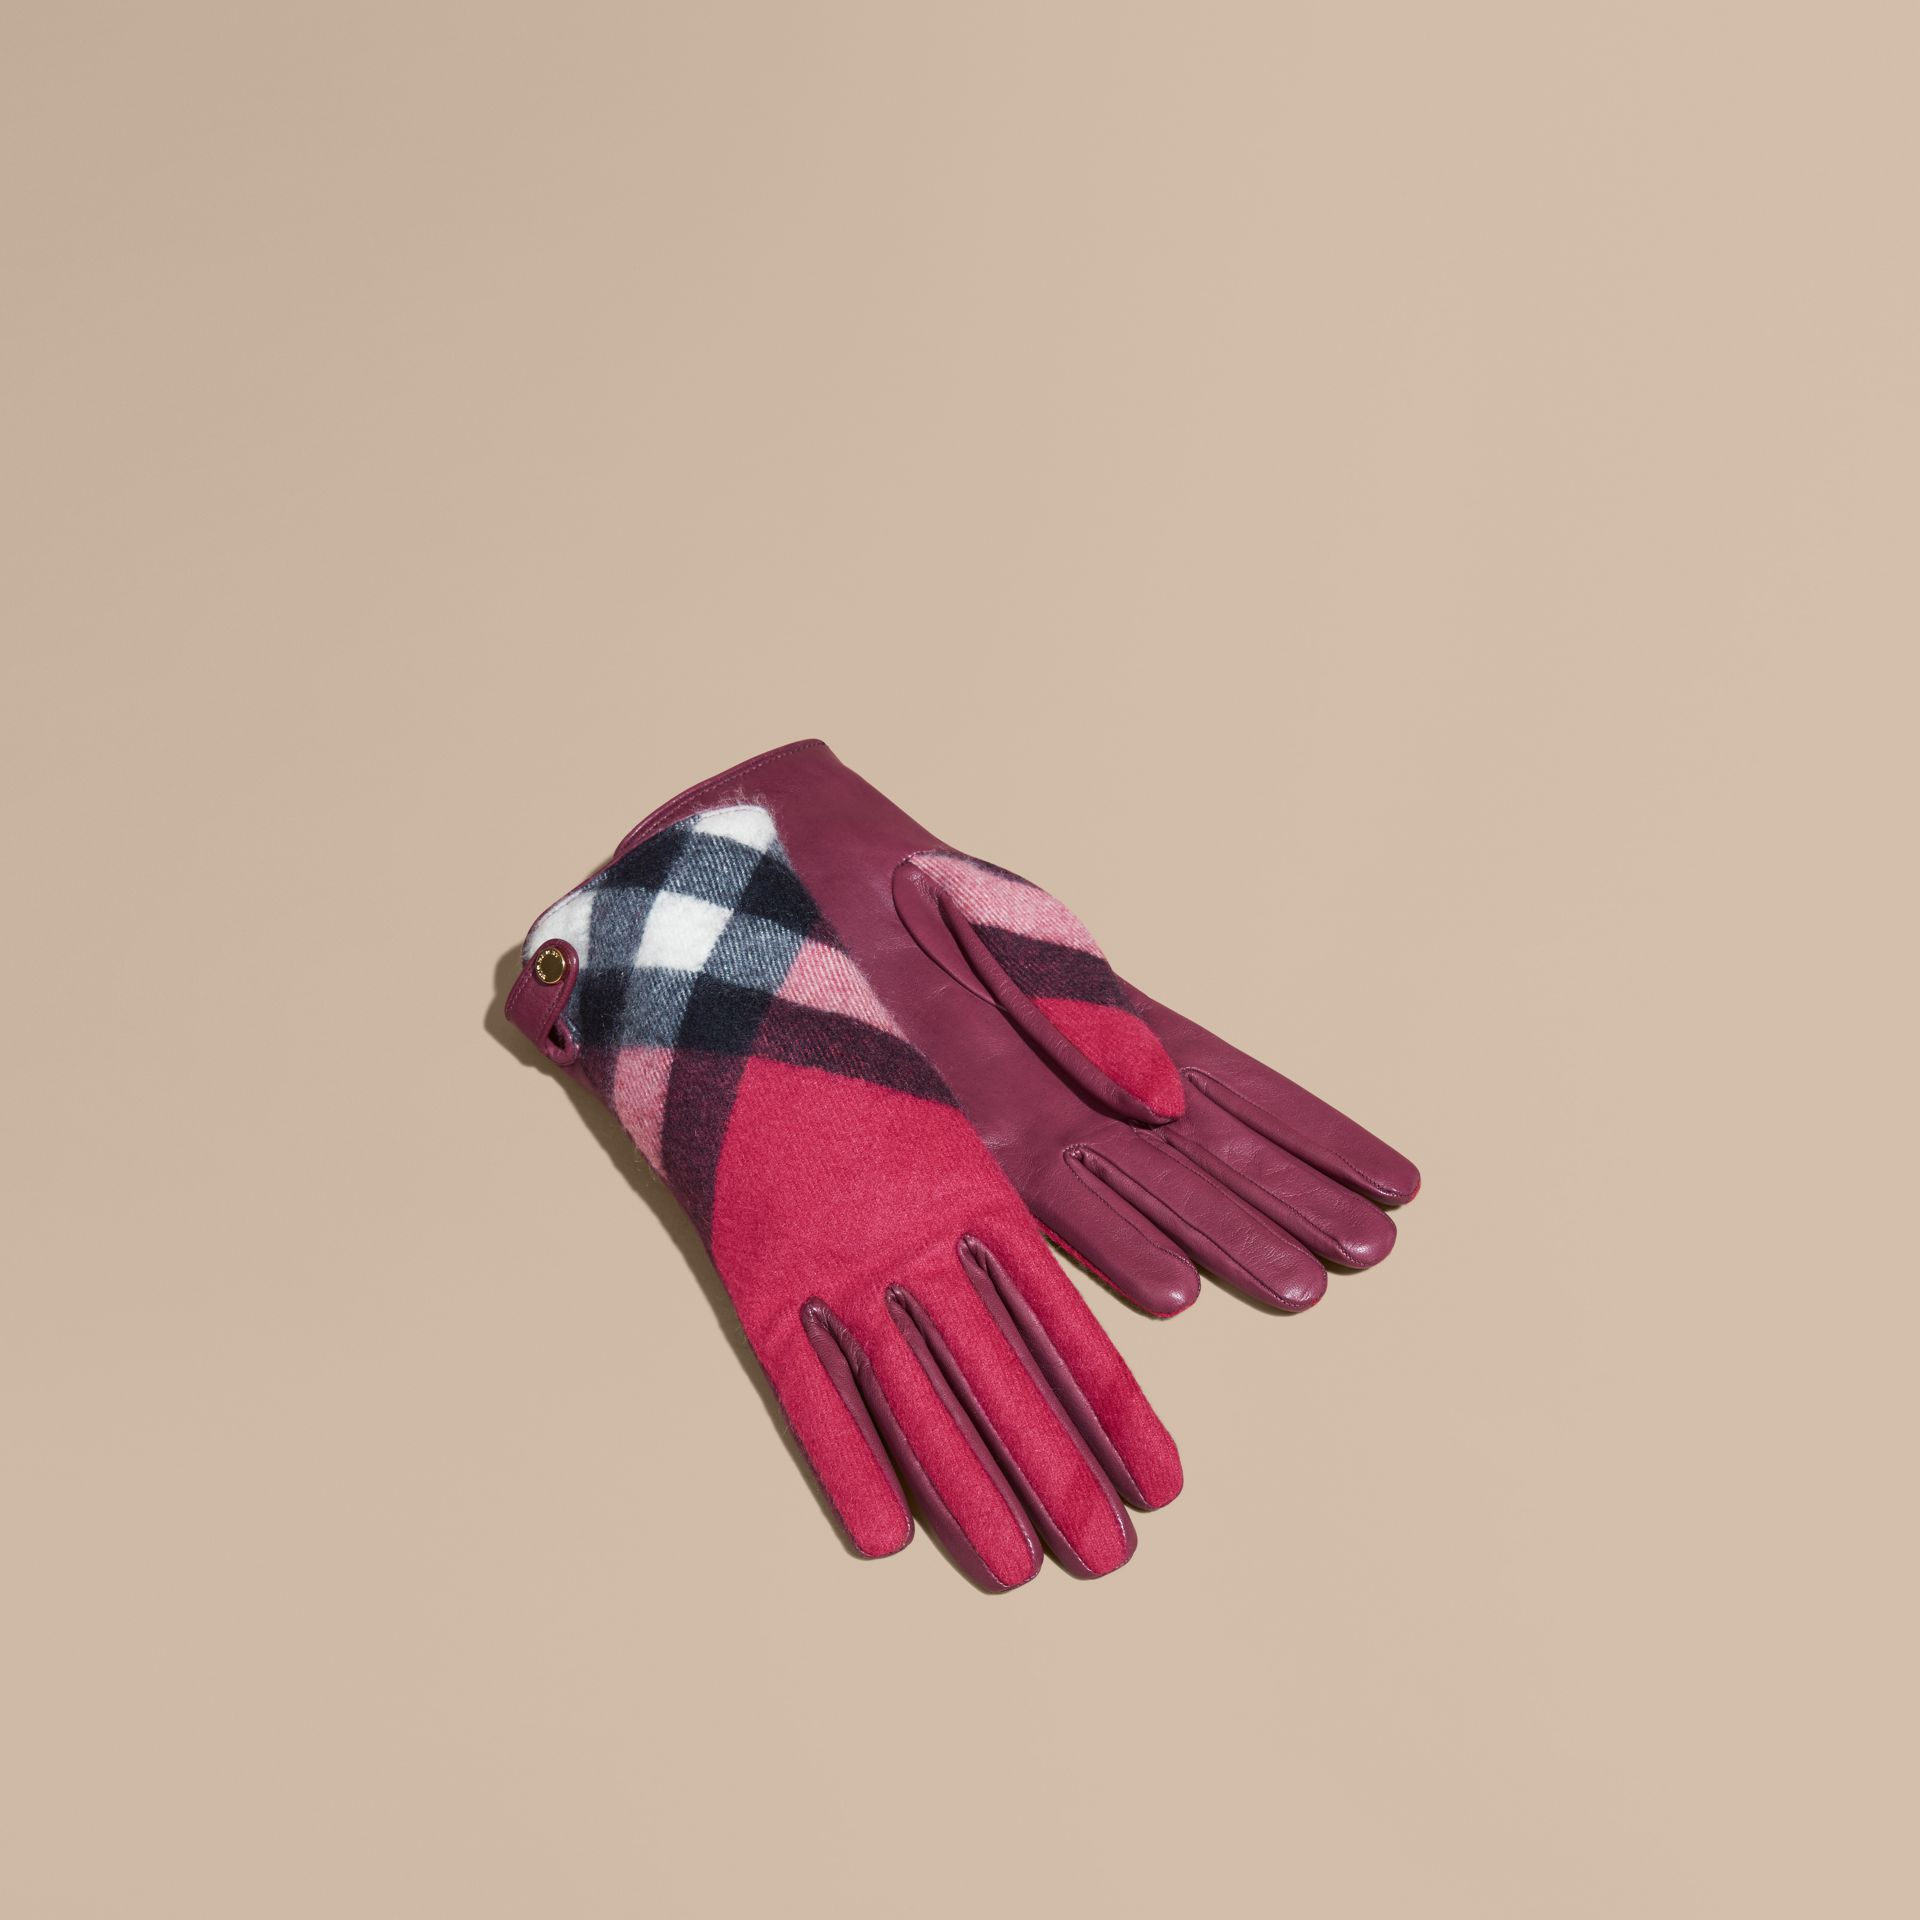 Leather and Check Cashmere Gloves in Fuchsia - Women | Burberry - gallery image 1